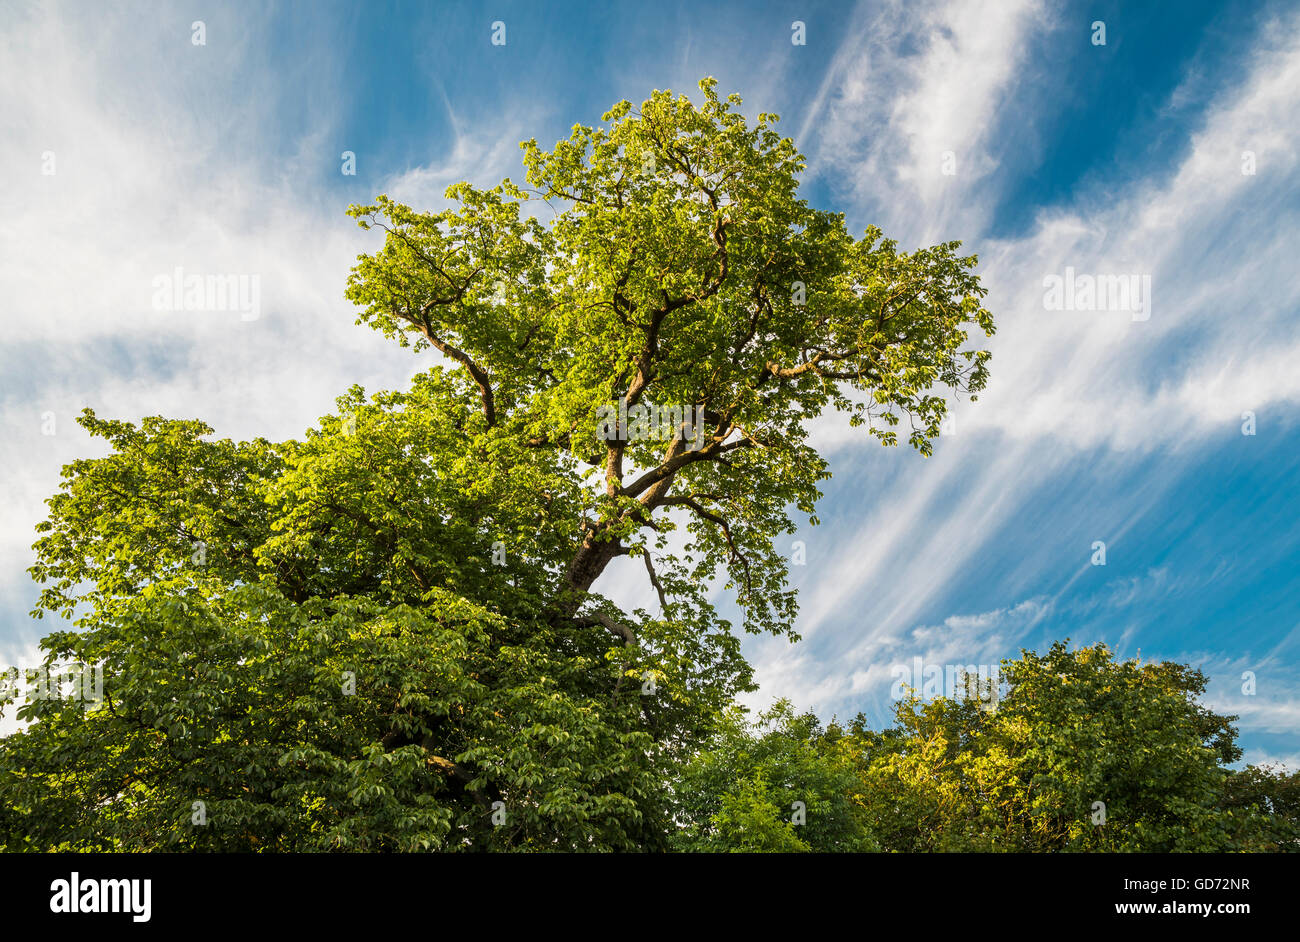 Woodland trees with spectacular cloud formations near Peterborough, Cambridgeshire, England - Stock Image